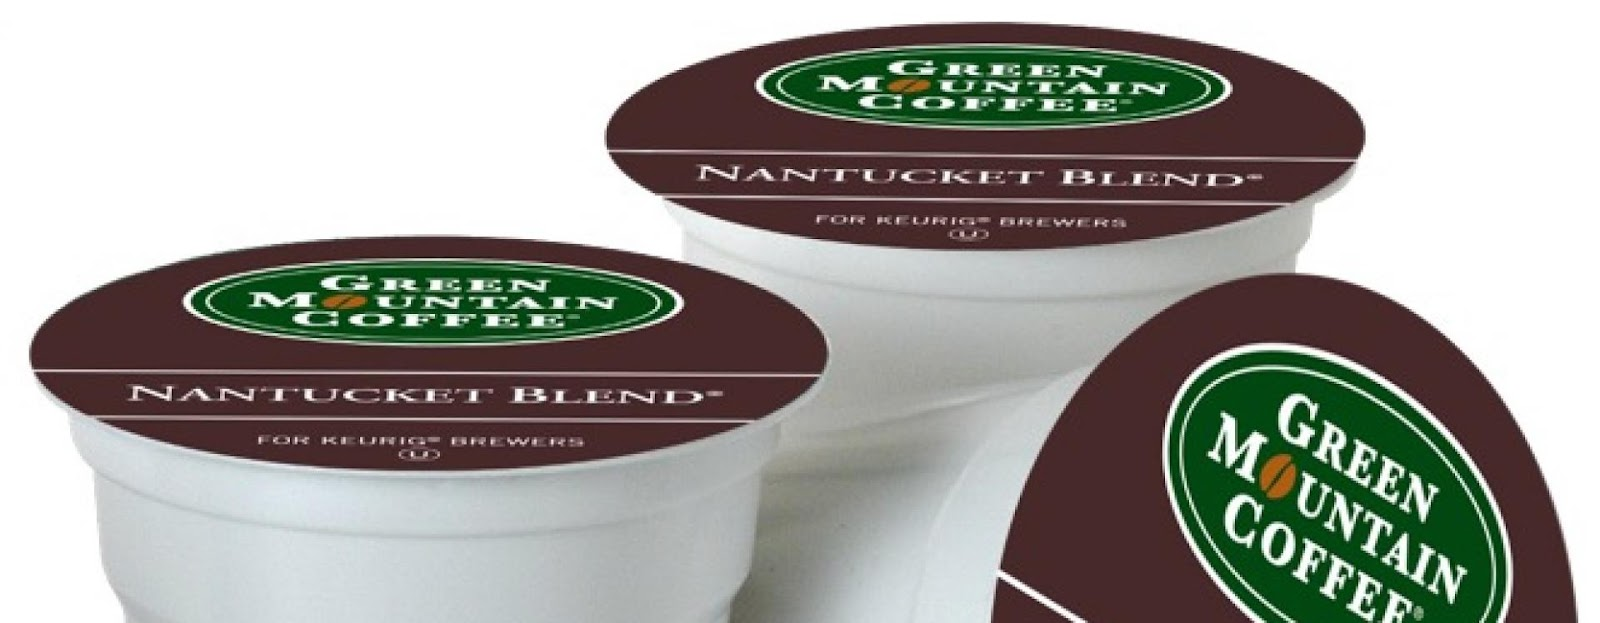 compostable packaging example, green mountain coffee